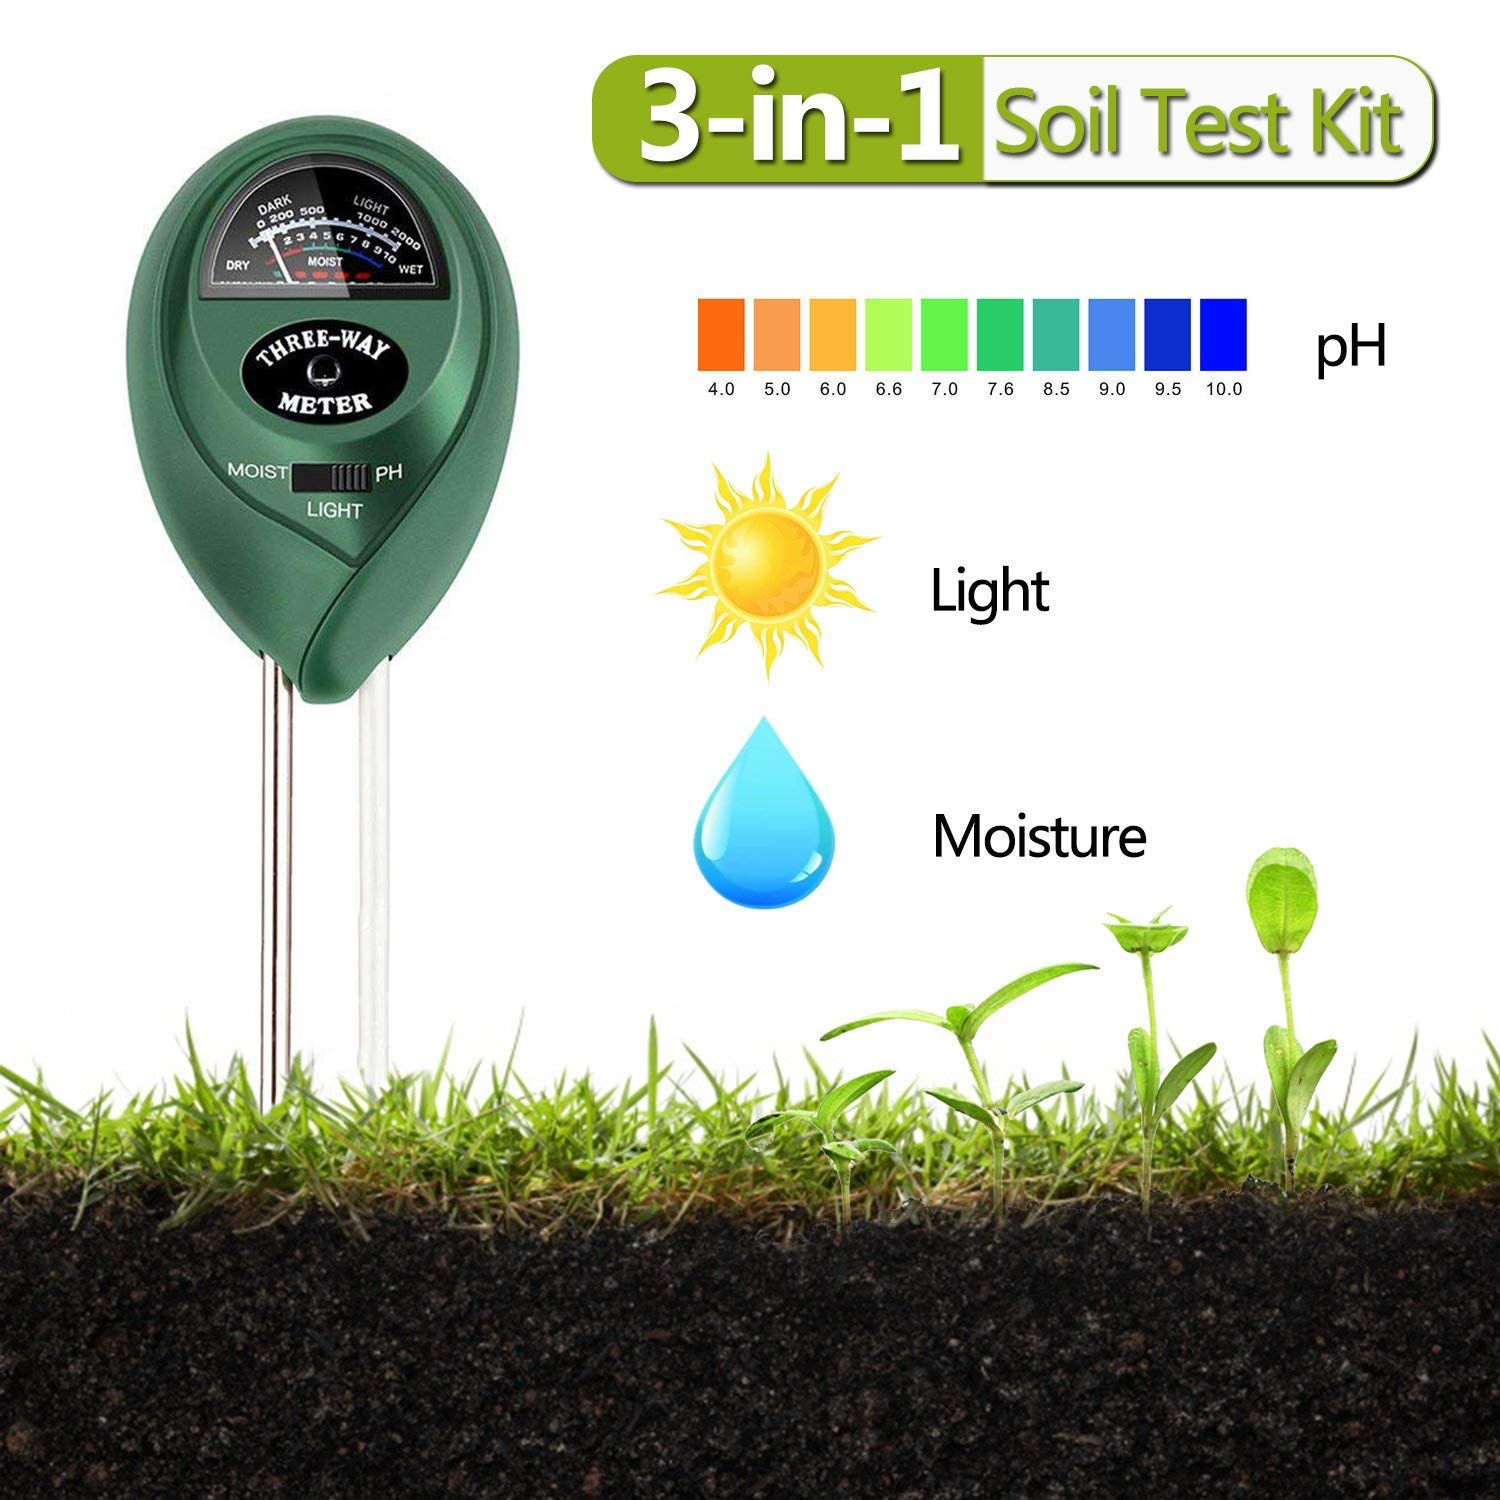 EONLION Goldpar Soil pH Meter, 3 in 1 Soil Test Kit for Moisture, Light & pH or Acidity, Gardening Tools for Home, Lawn, Garden, Plants, Farm, Indoor Outdoor Plant Care Soil Tester (No Battery Needed) Gardening Tools for Garden and Home